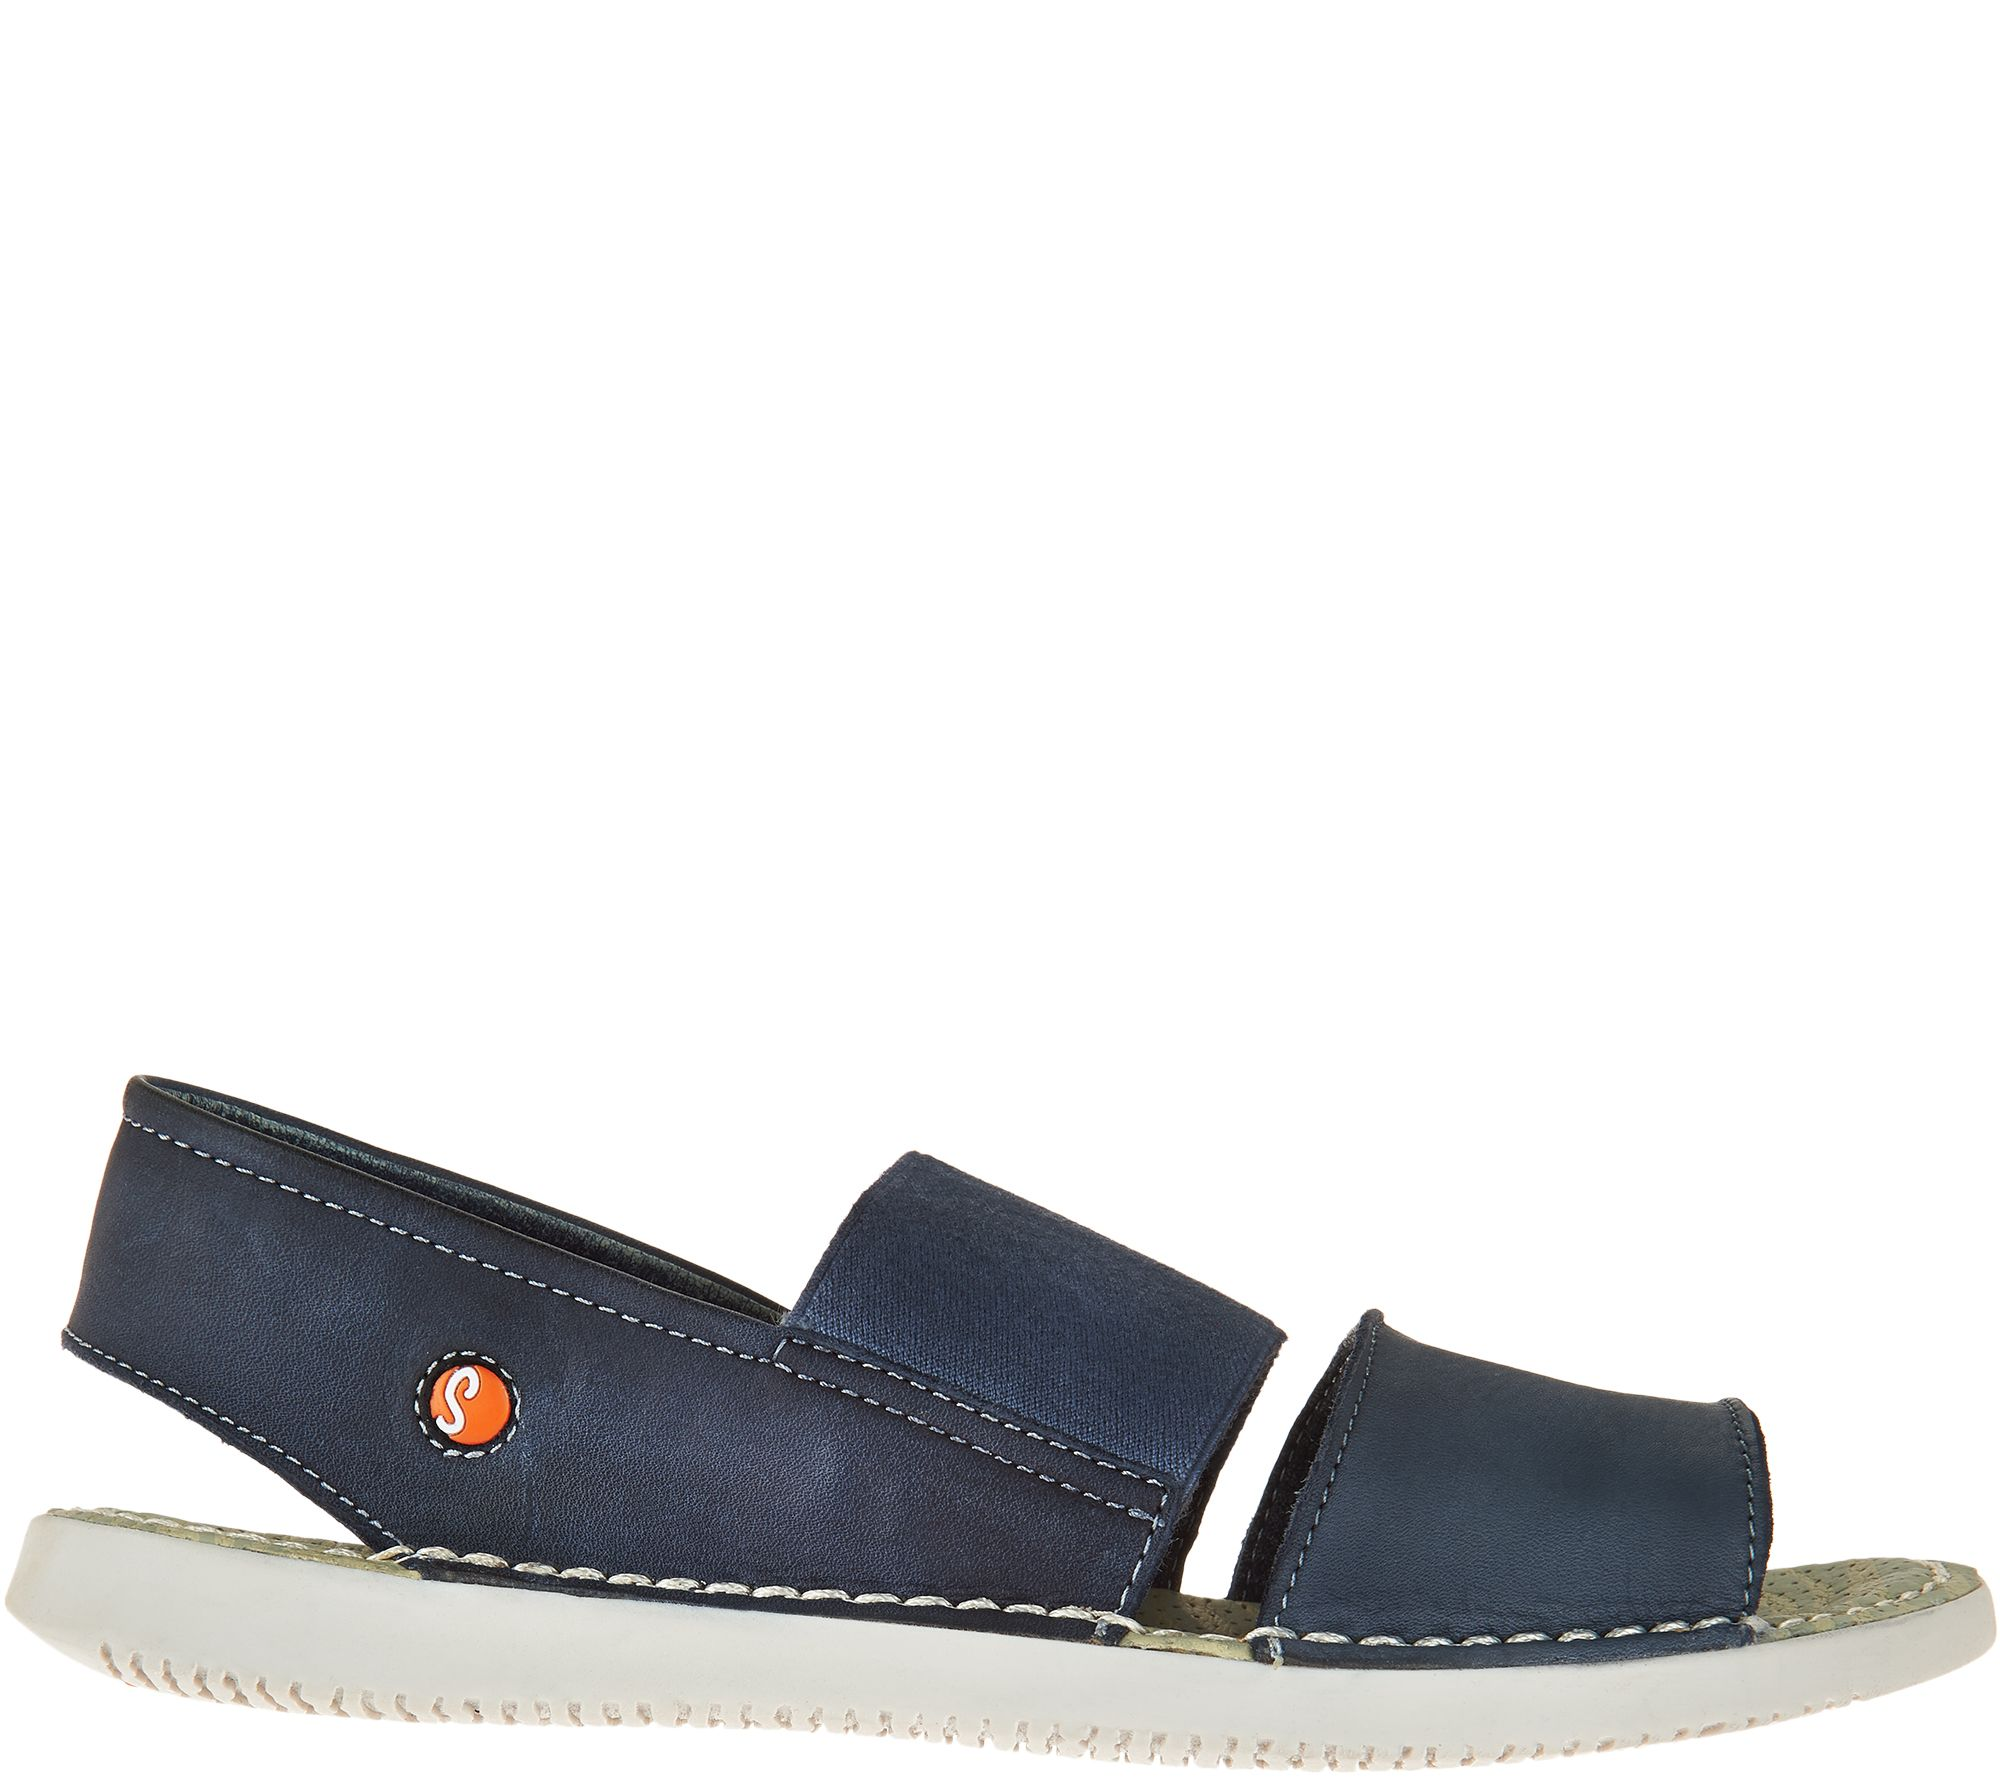 6efbd84f3f2 Softinos by FLY London Leather Slip-on Sandals - Tai - Page 1 — QVC.com